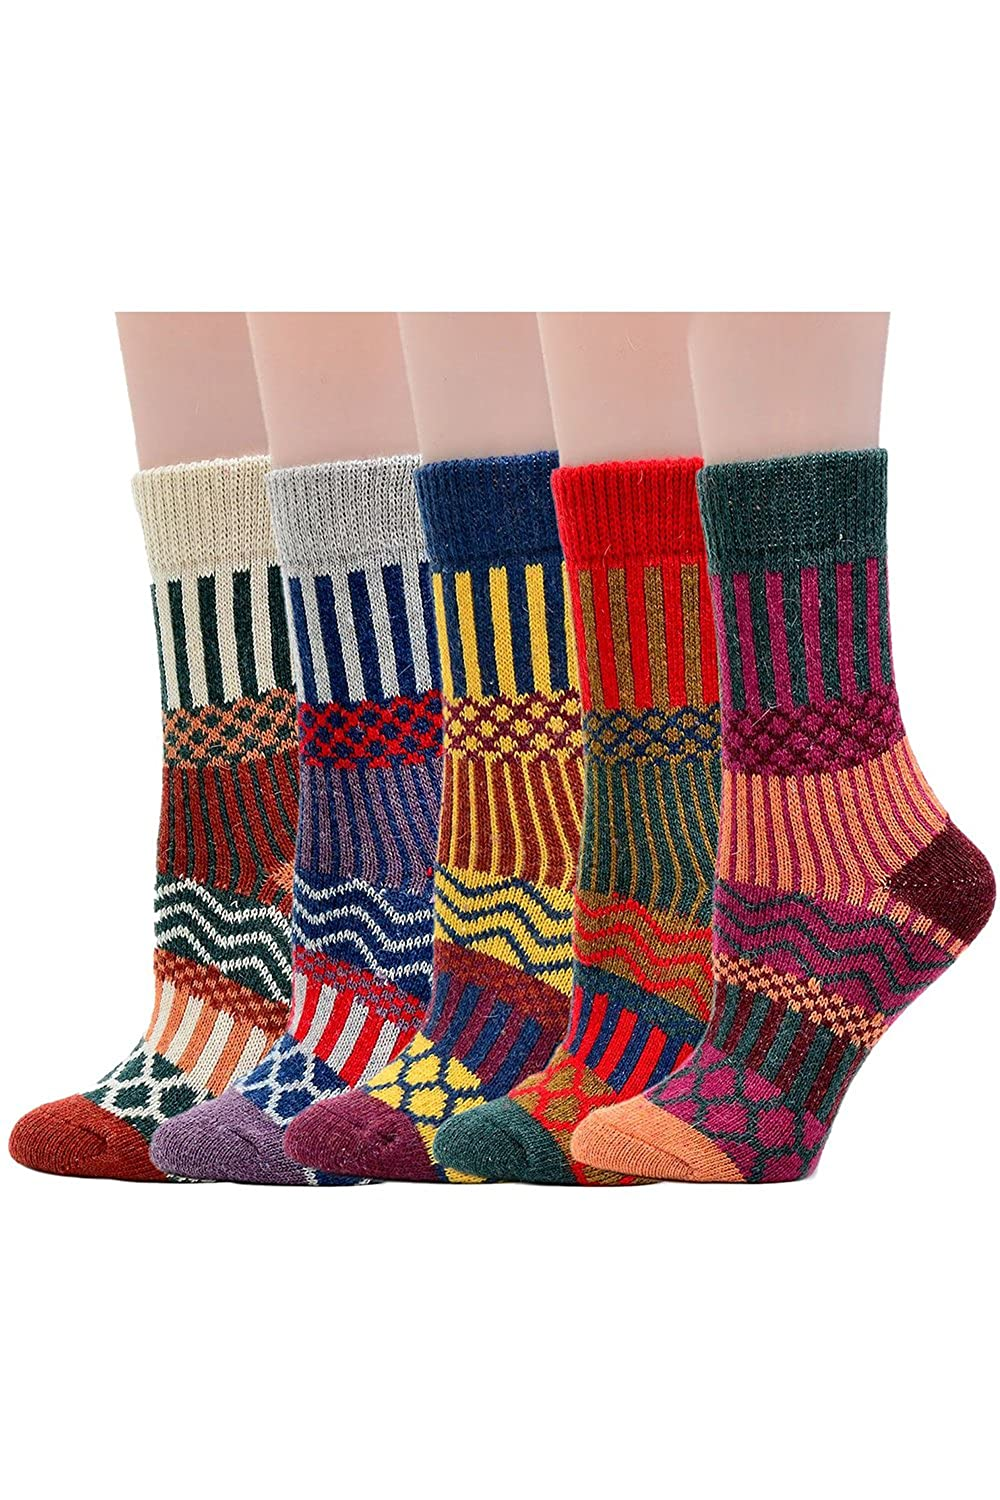 Elisona/®5 Pairs of Women Ladies Girls Mixed Colors Winter Warm Thickness National Style Tube Socks